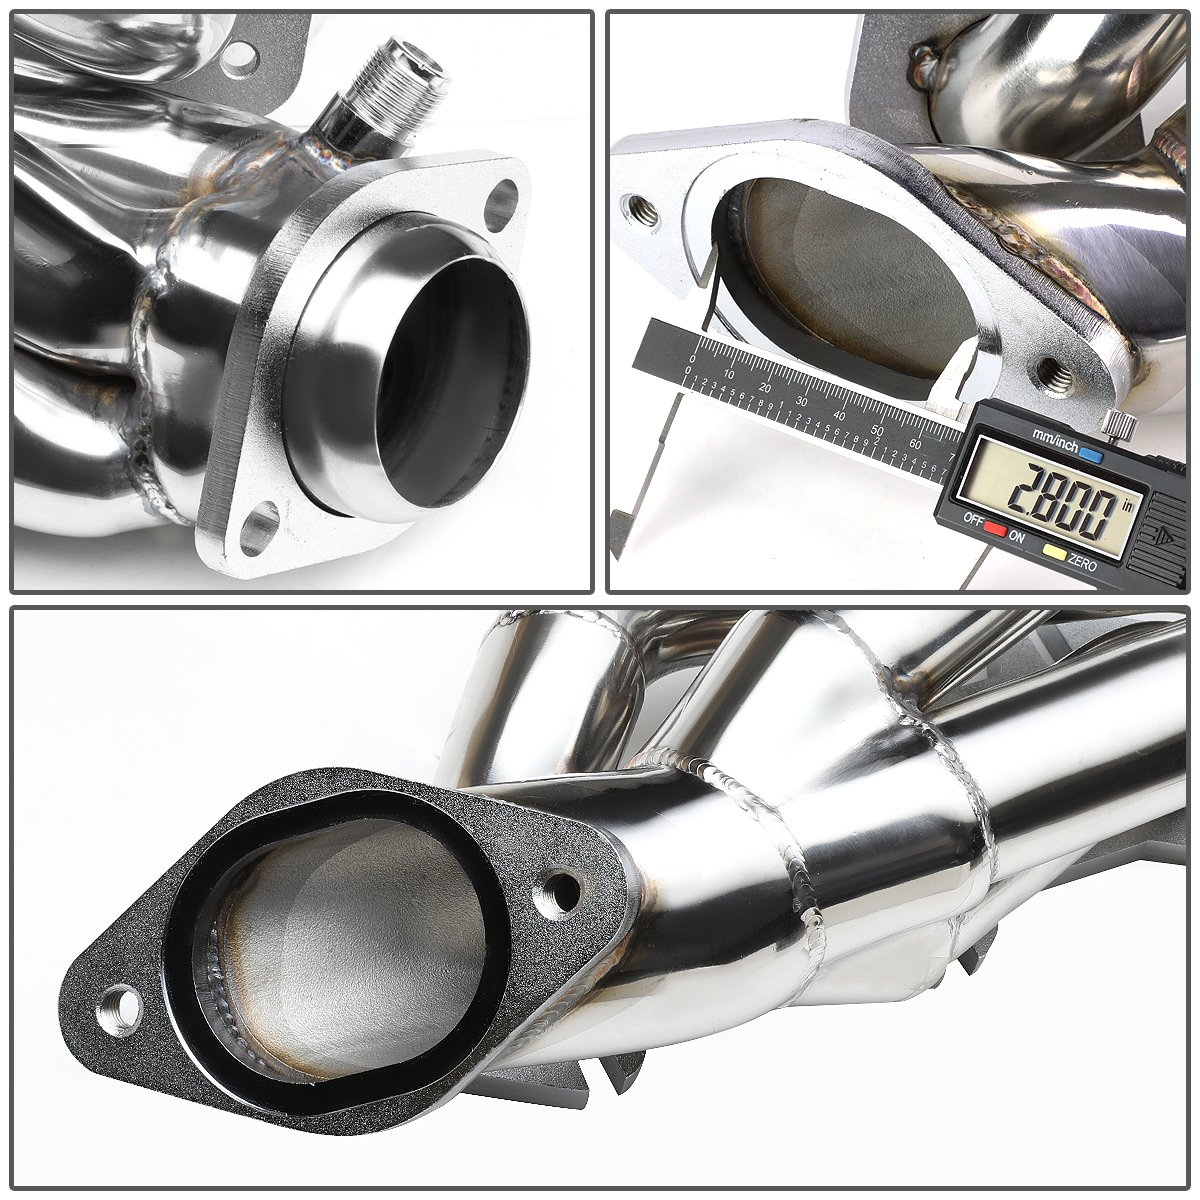 DNA Motoring HDS-FM96-46L-SHORTY Stainless Steel Exhaust Header Manifold